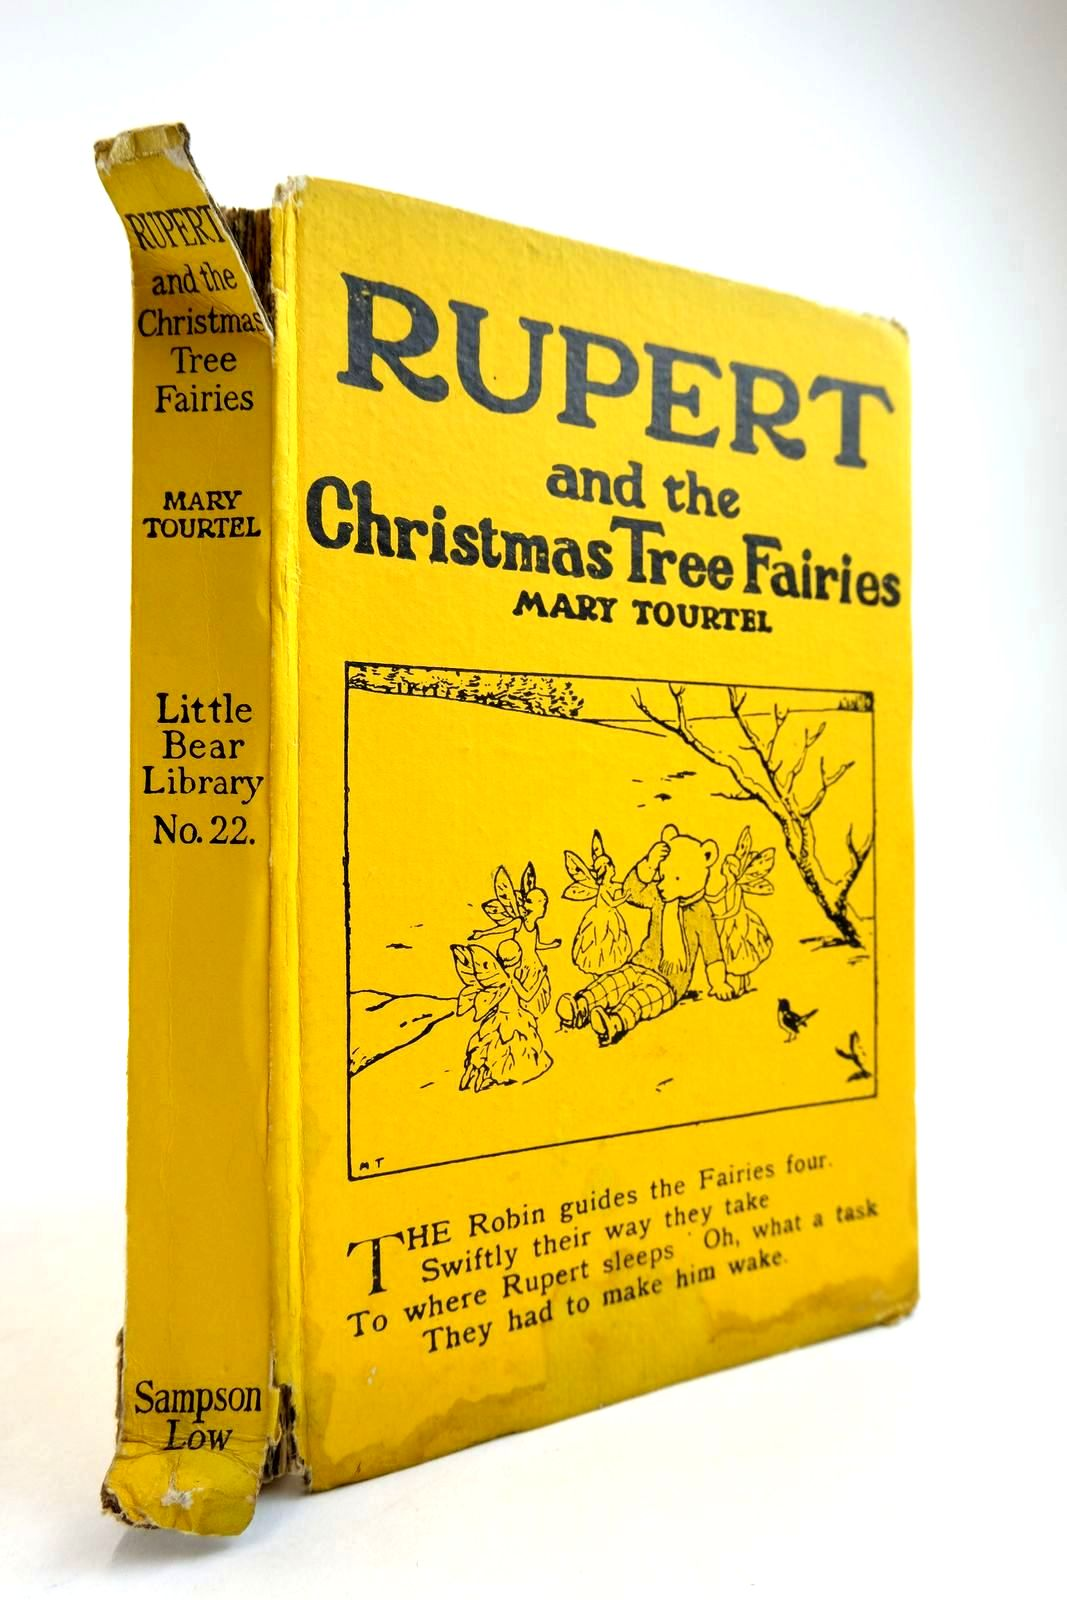 Photo of RUPERT AND THE CHRISTMAS TREE FAIRIES - RUPERT LITTLE BEAR LIBRARY No. 22 written by Tourtel, Mary illustrated by Tourtel, Mary published by Sampson Low, Marston & Co. Ltd. (STOCK CODE: 2134258)  for sale by Stella & Rose's Books